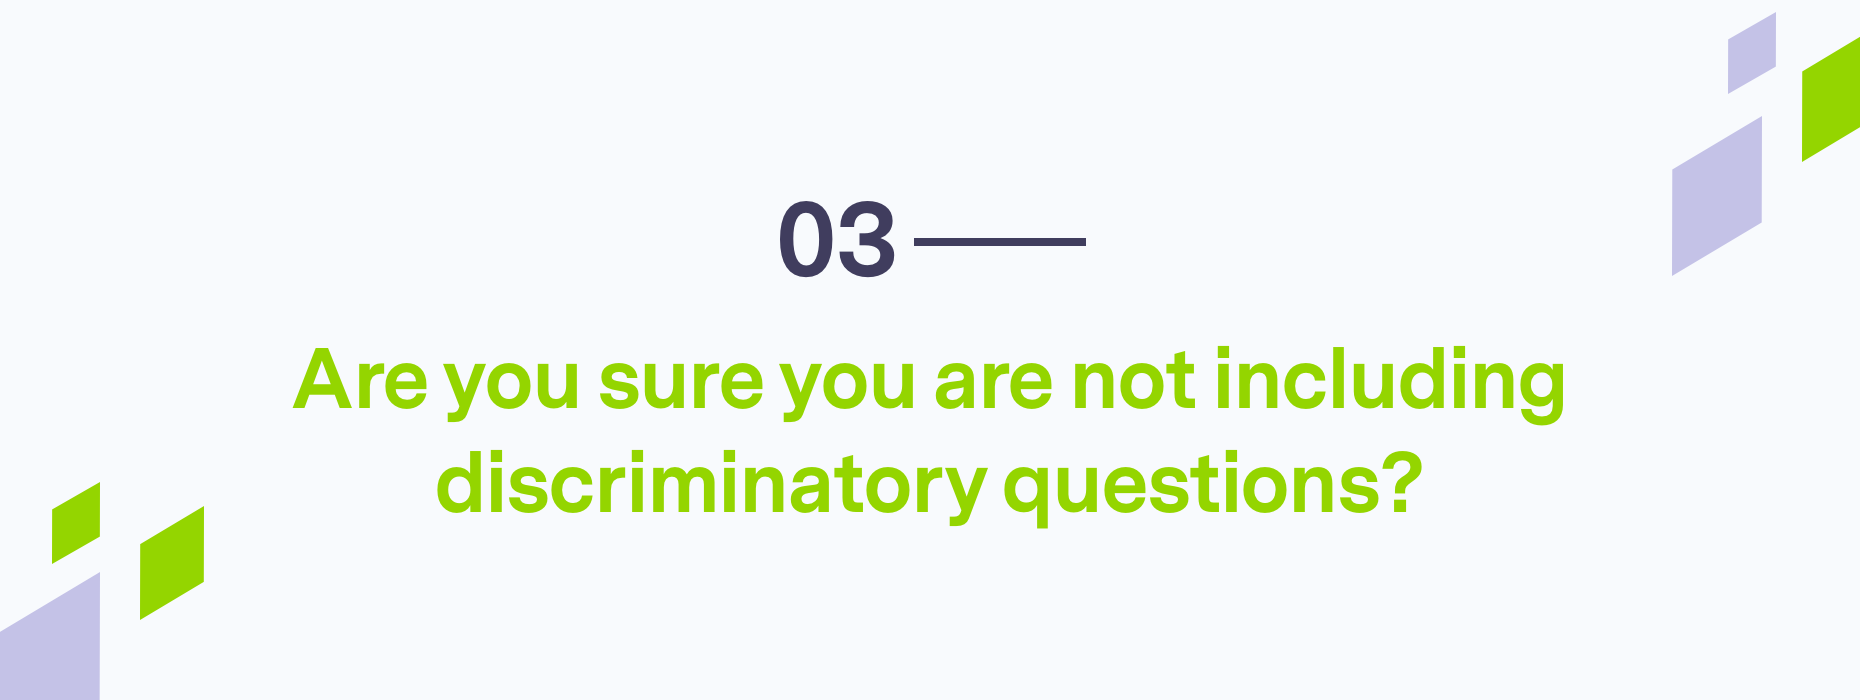 Branded question about not including discriminatory questions